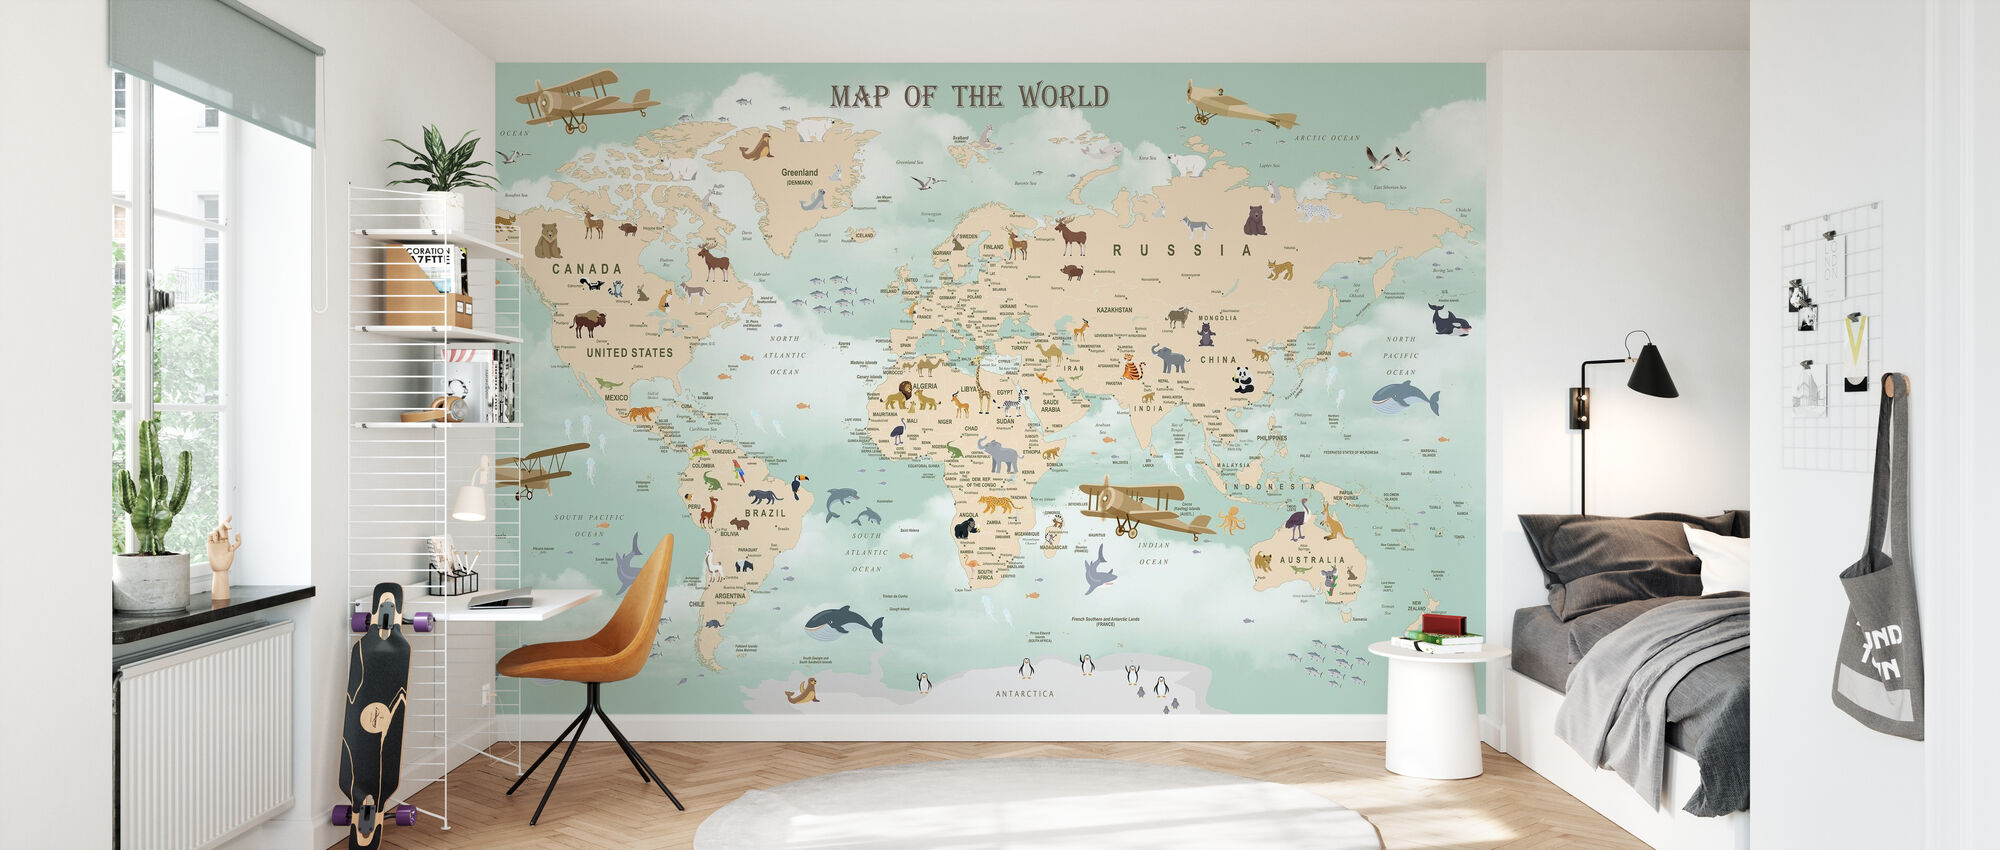 Wildlife World Map - Wallpaper - Kids Room